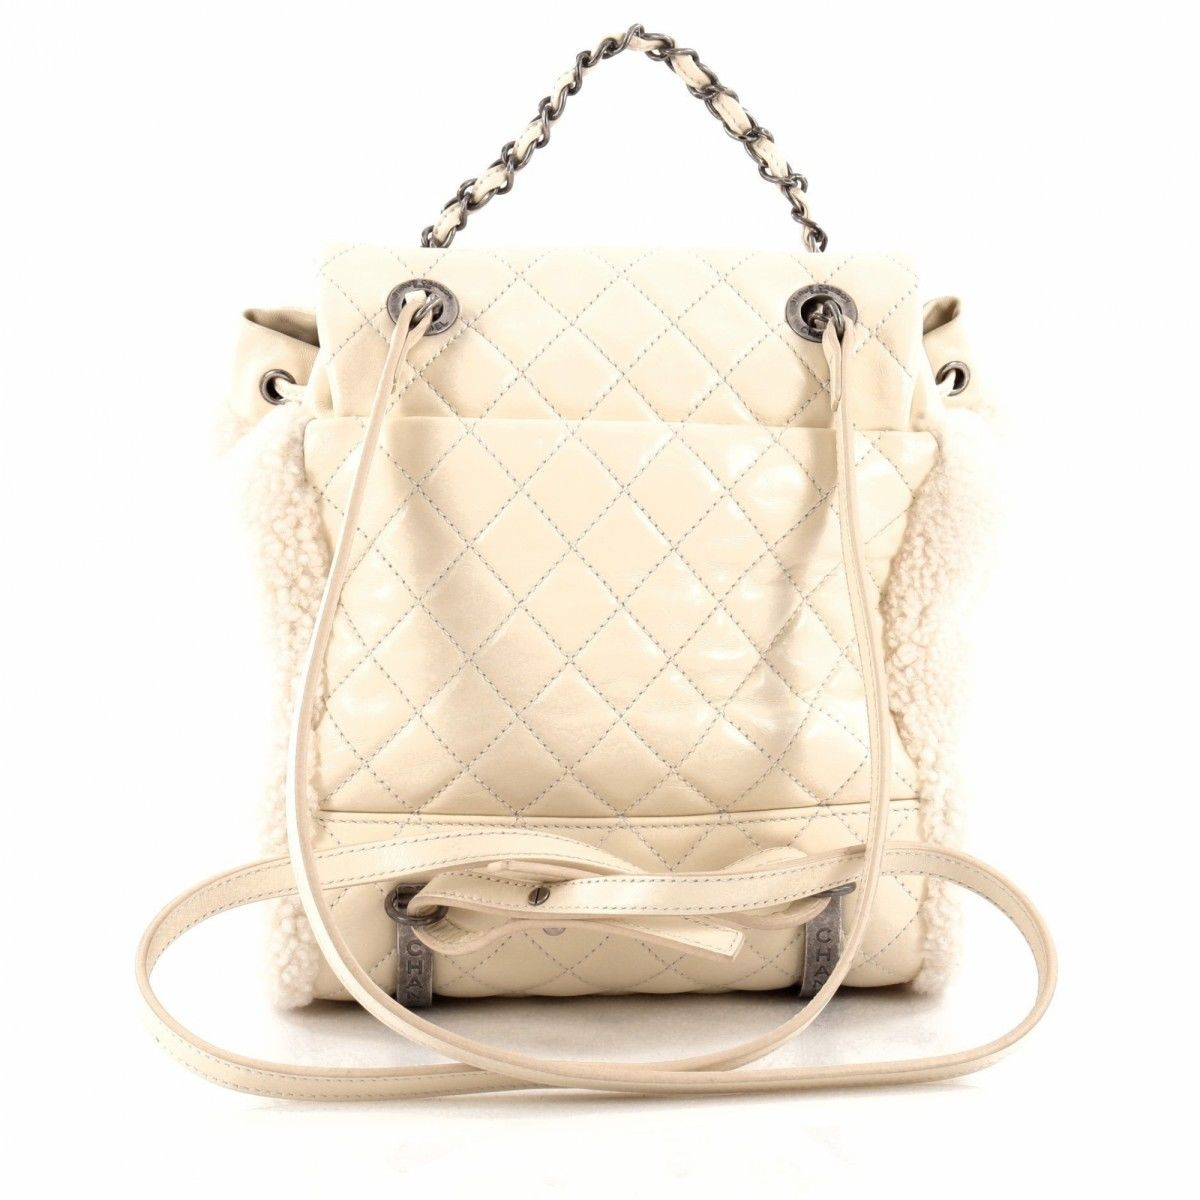 453e3f7b7ab6 Chanel Mountain Backpack Shearling with Quilted Calfskin Small ...